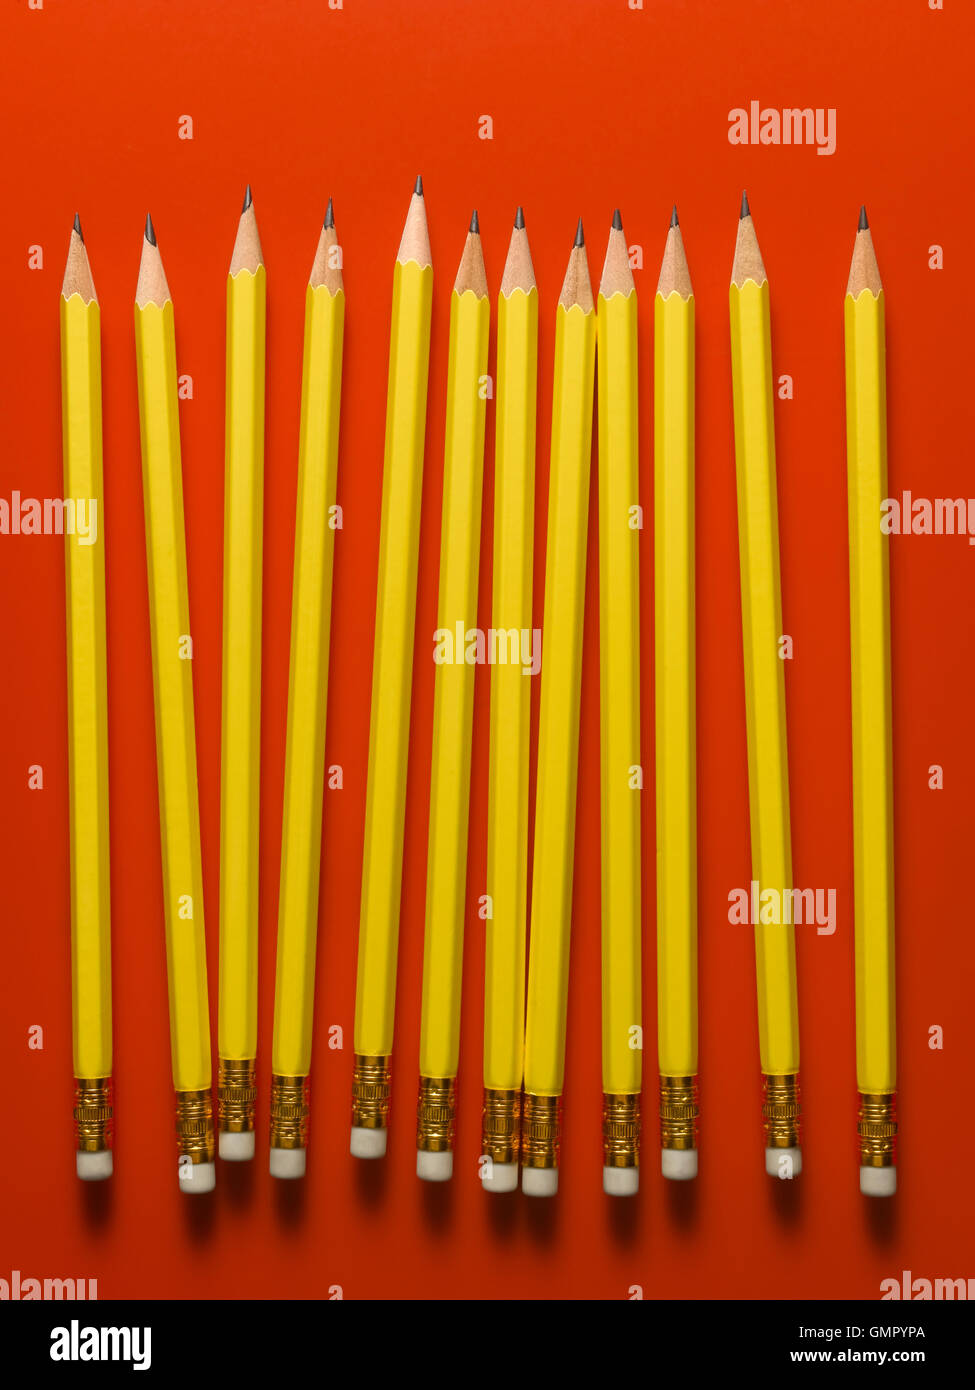 Pencils on a line on a red background - Stock Image